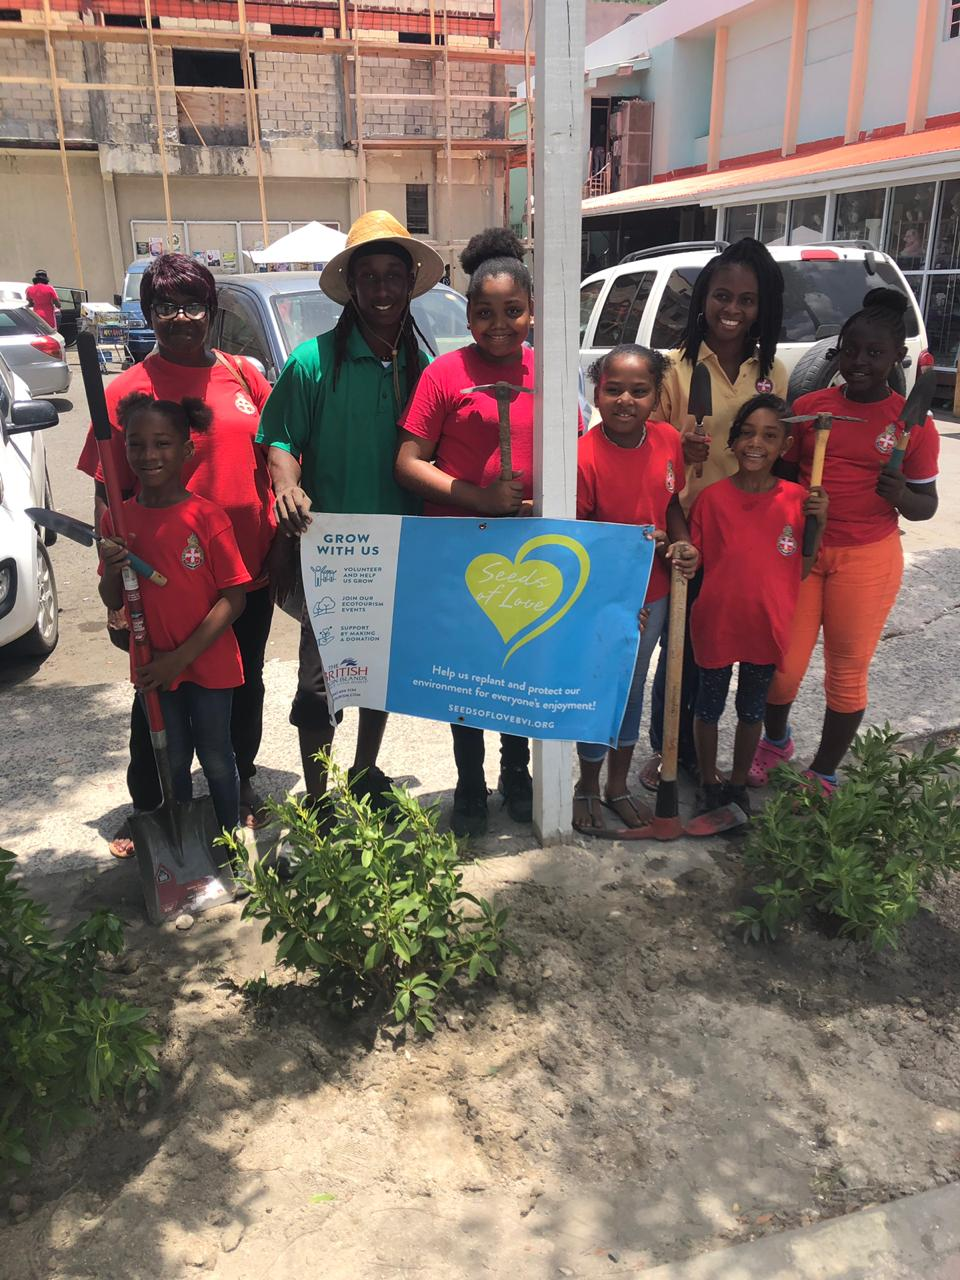 The Girl's Brigade of Tortola planted 8 Green Buttonwood plants in planters on DeCastro Street on June 21. The girls are doing a great job maintaining the plants.